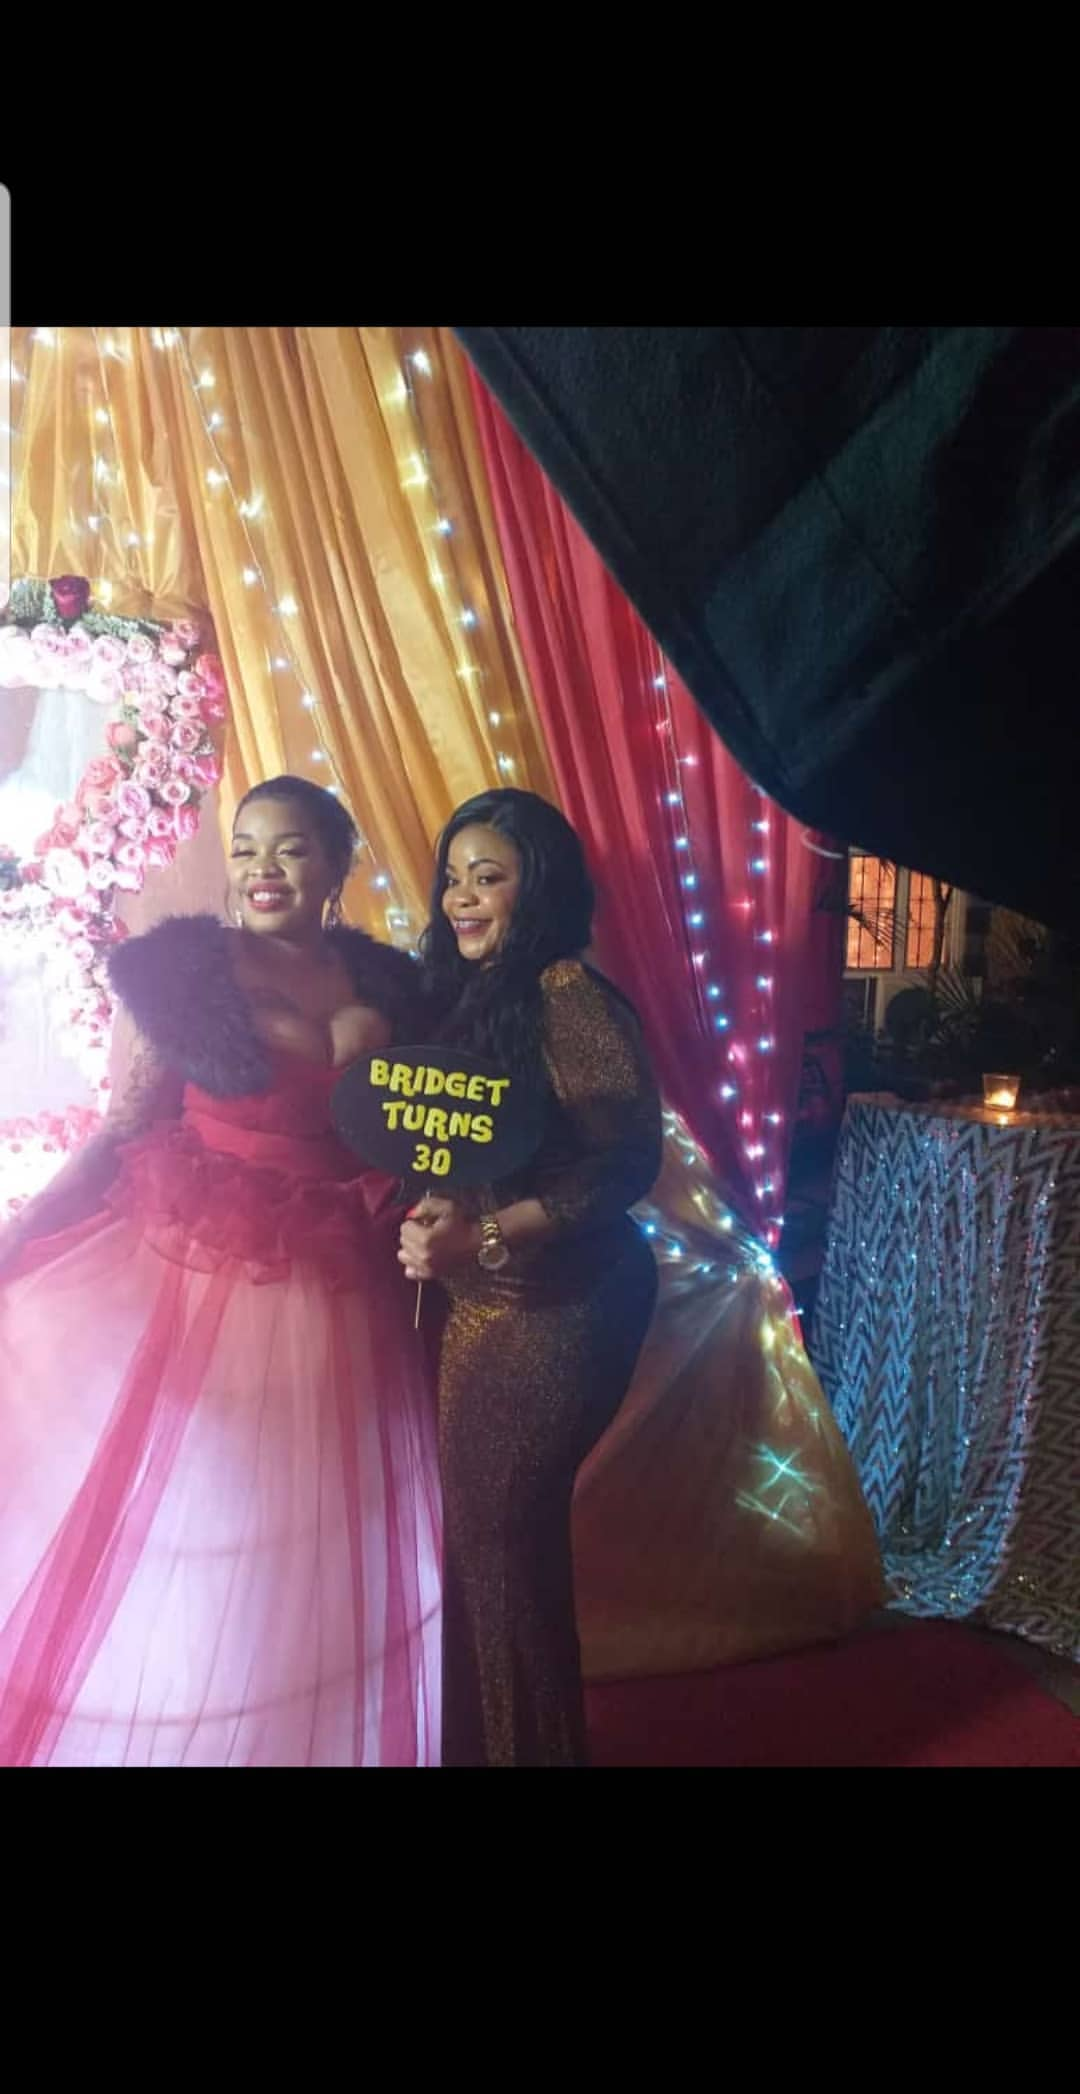 bridget birthday party3 - Party like a rock star! Bridget Achieng celebrates 30th birthday